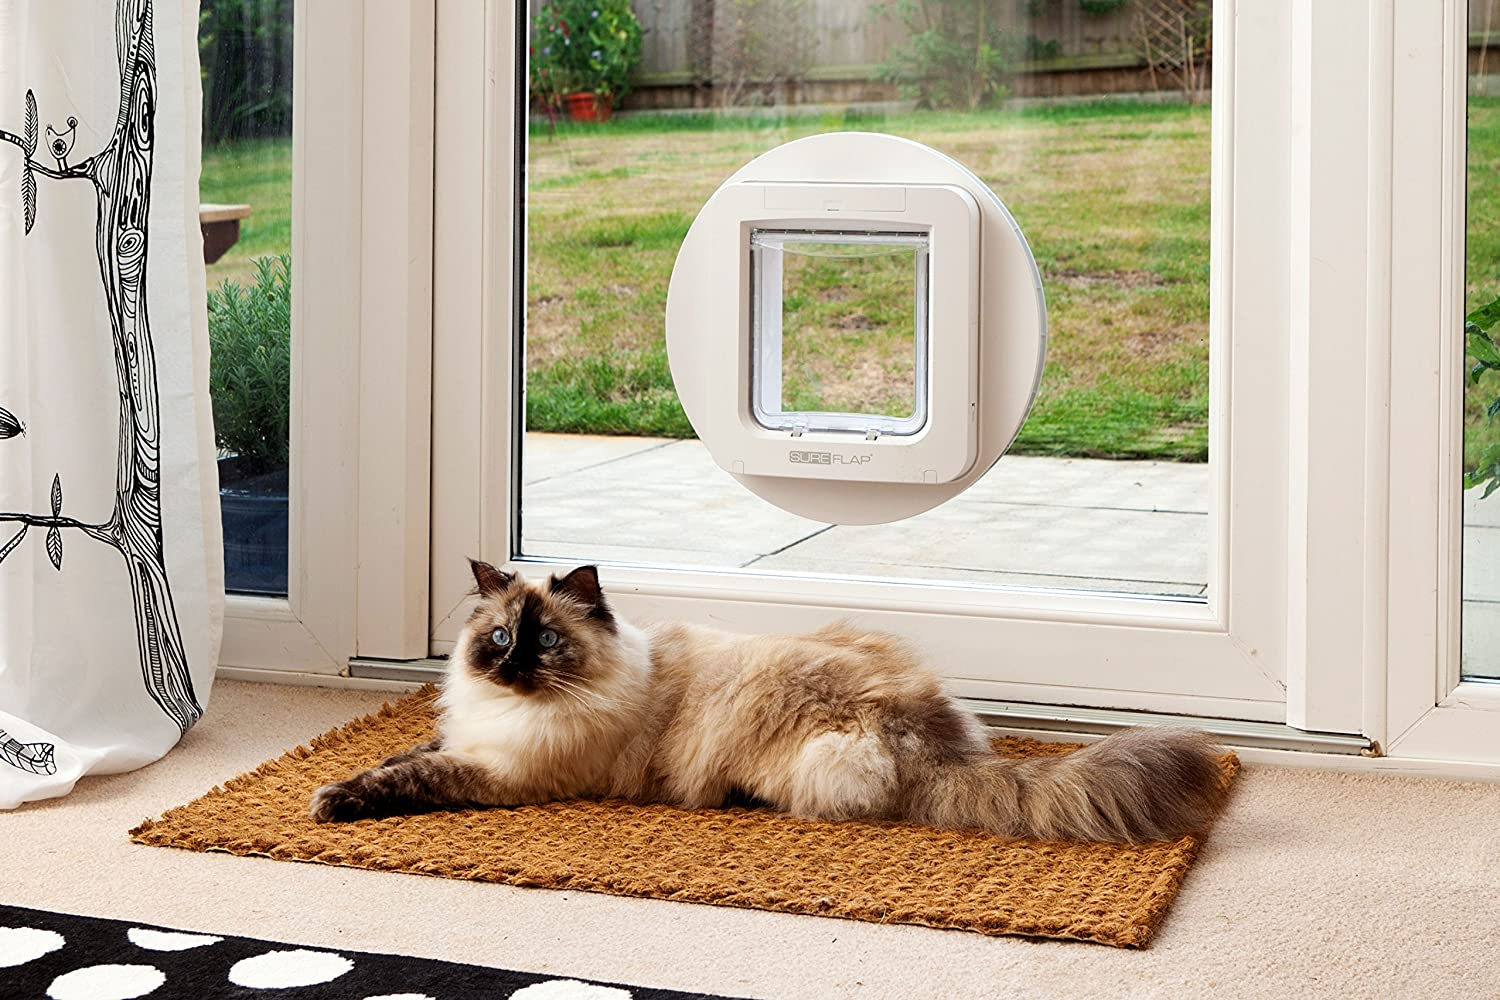 Pet Door with Sensor and Smart Chip